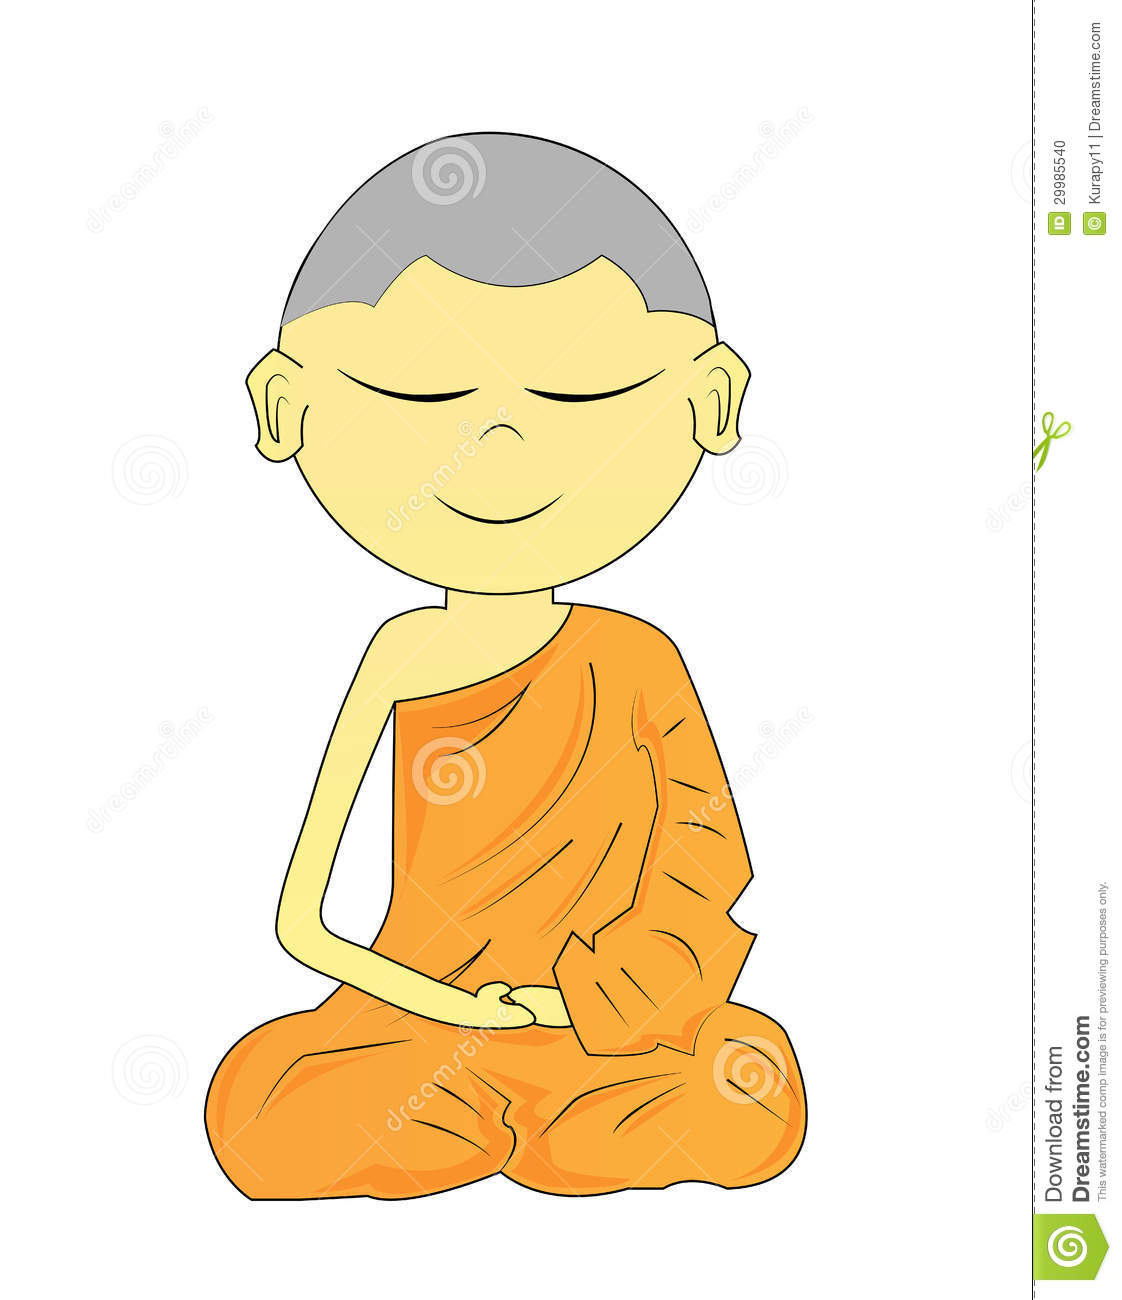 buddhist single men in fort white Florida dharma groups buddhist and meditation groups, centers and samudrabadra kadampa buddhist center fort myers white sands buddhist center 4640 knost dr.